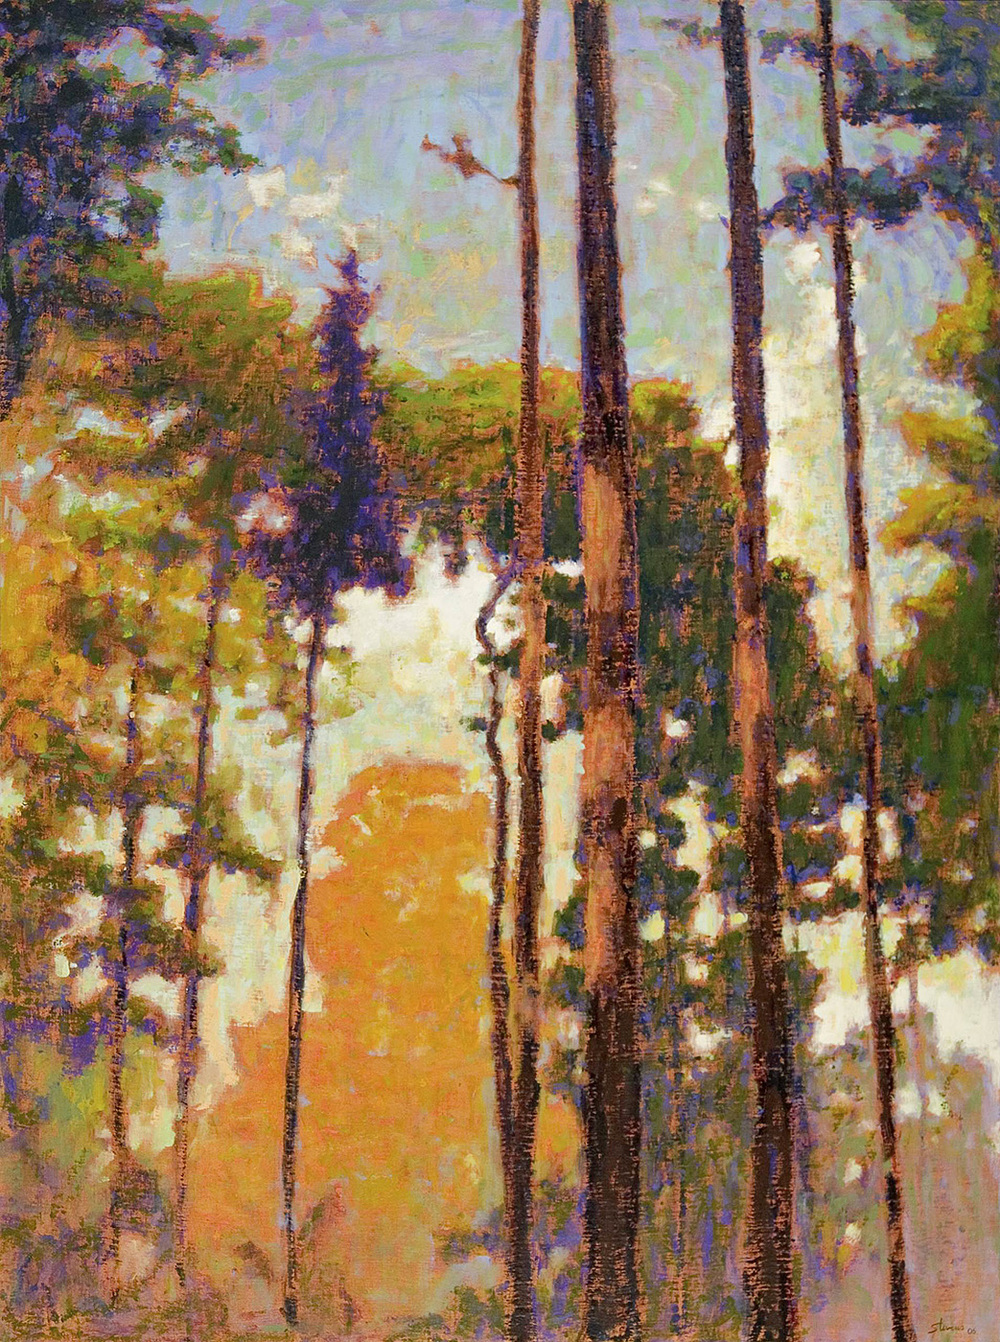 Tall Pines II   | oil on canvas | 48 x 36"